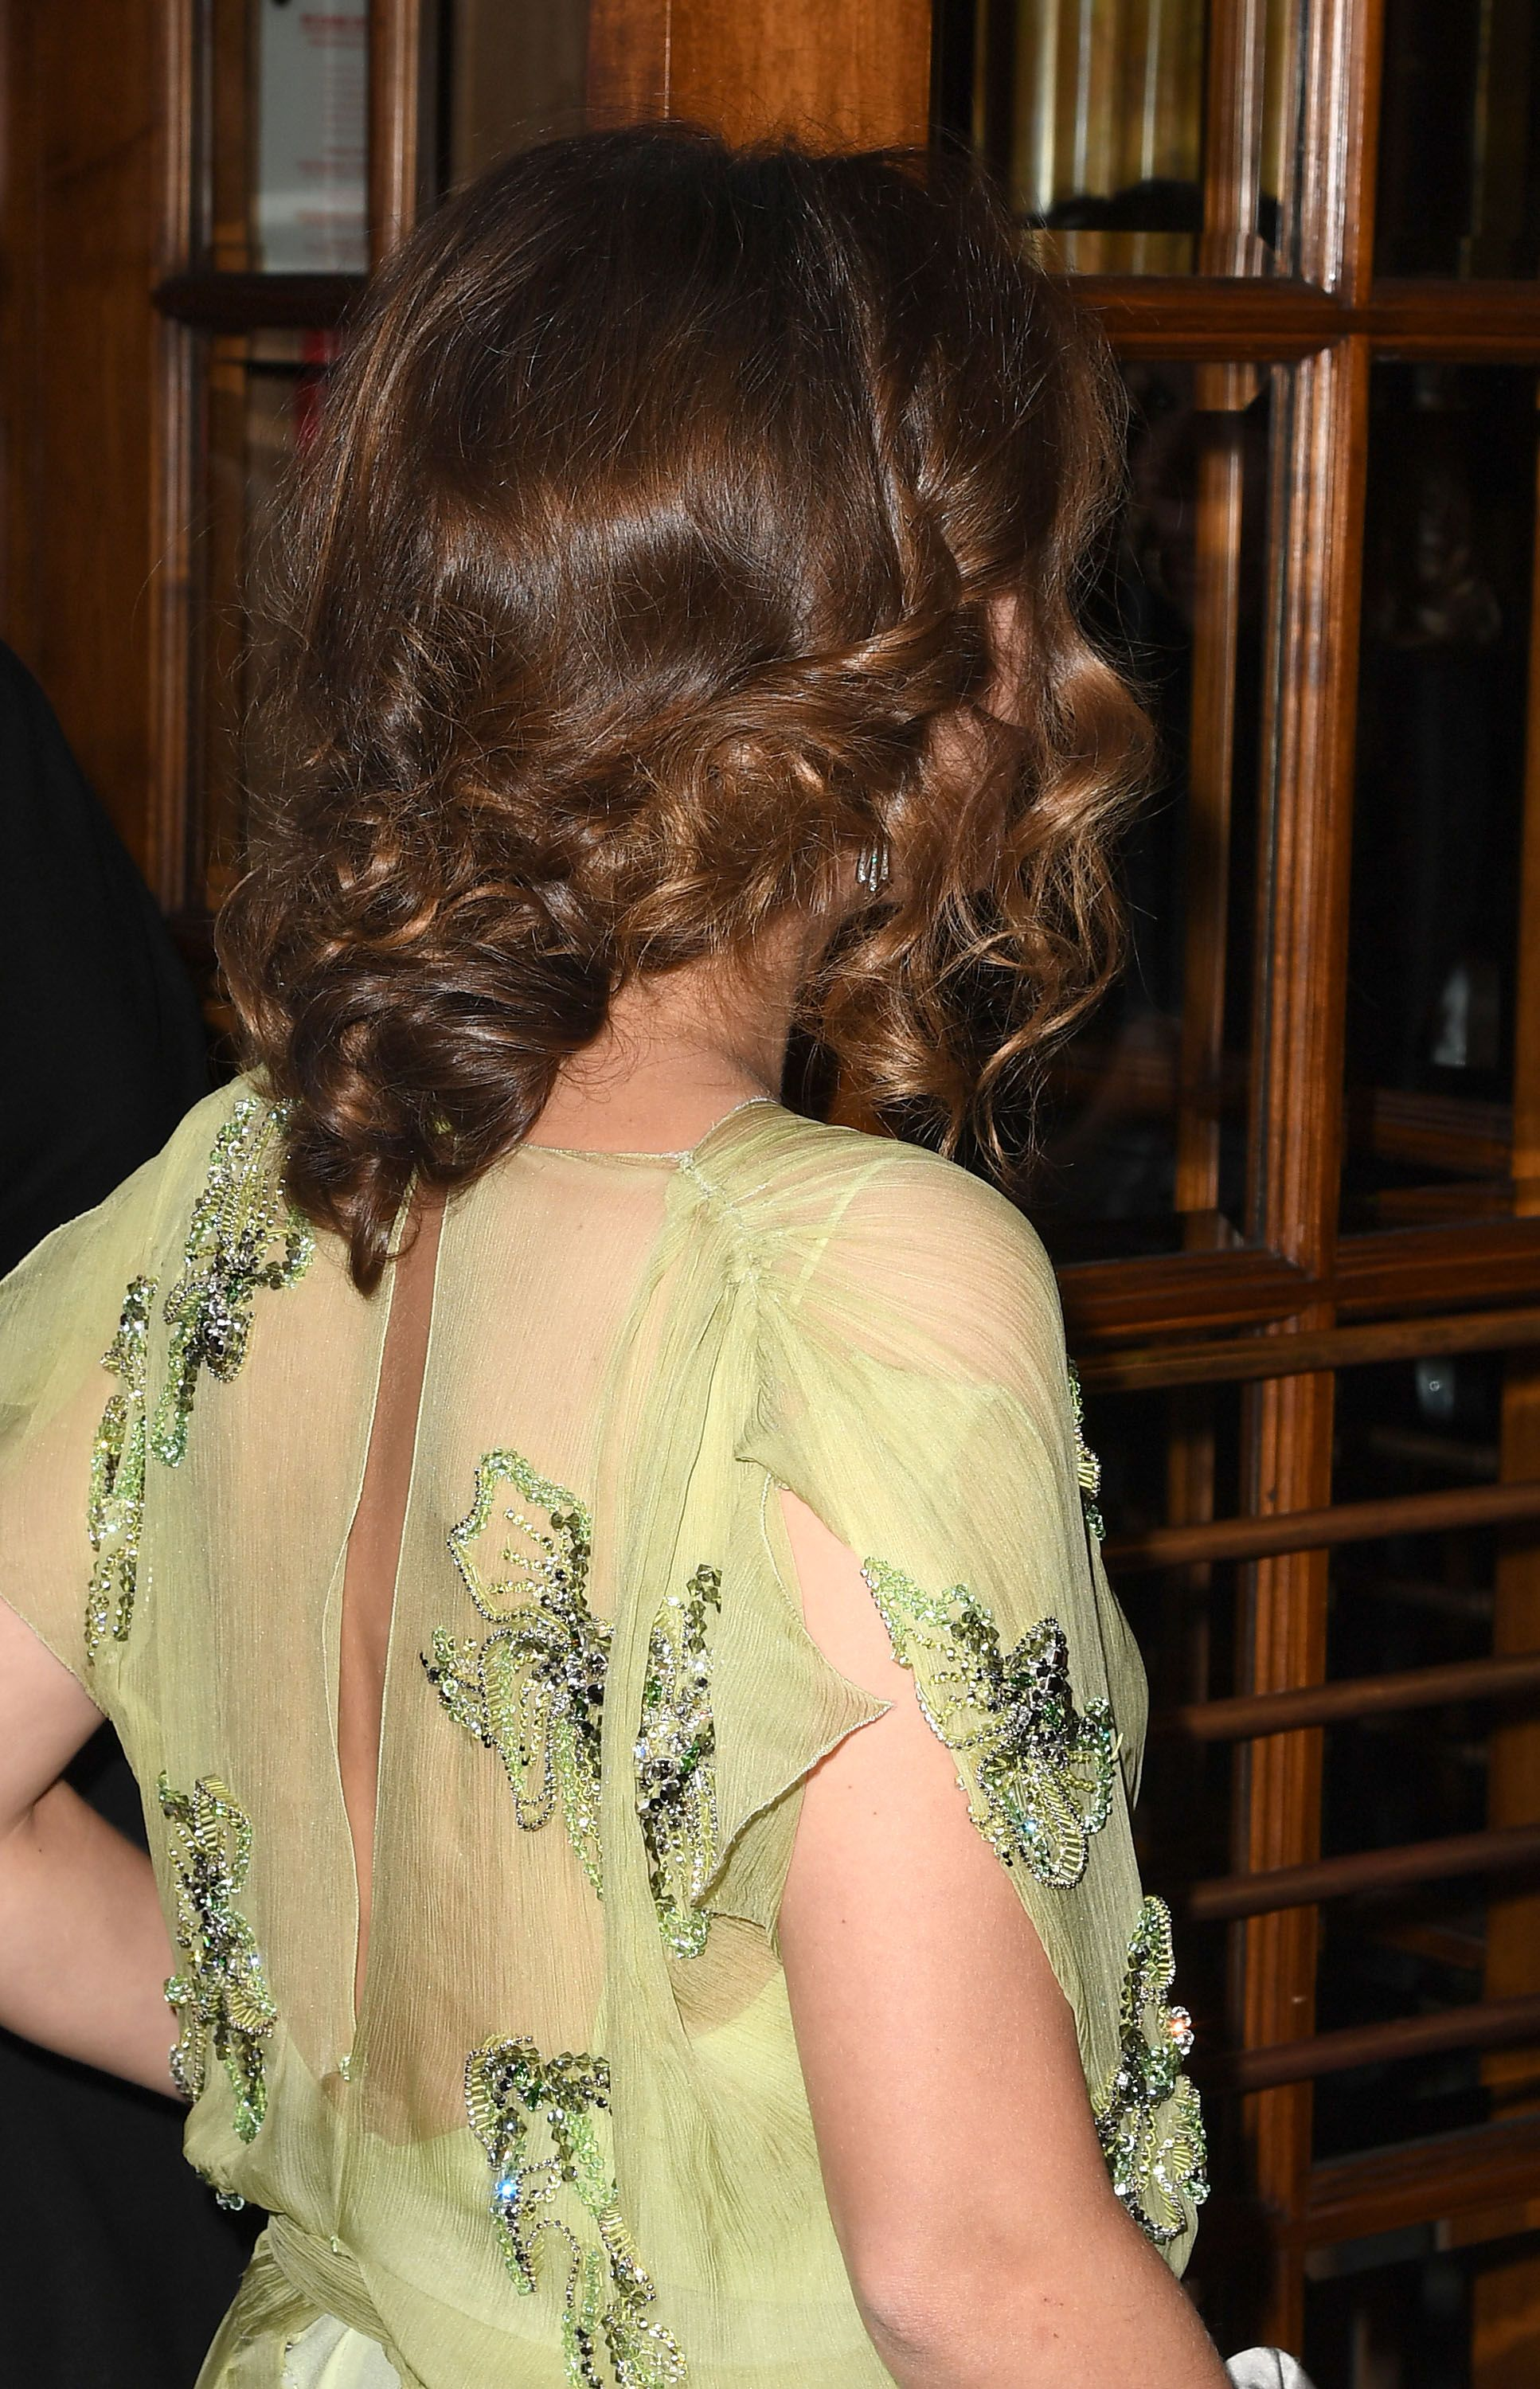 New season, new hairstyle   Evening Hair Up   Hair styles